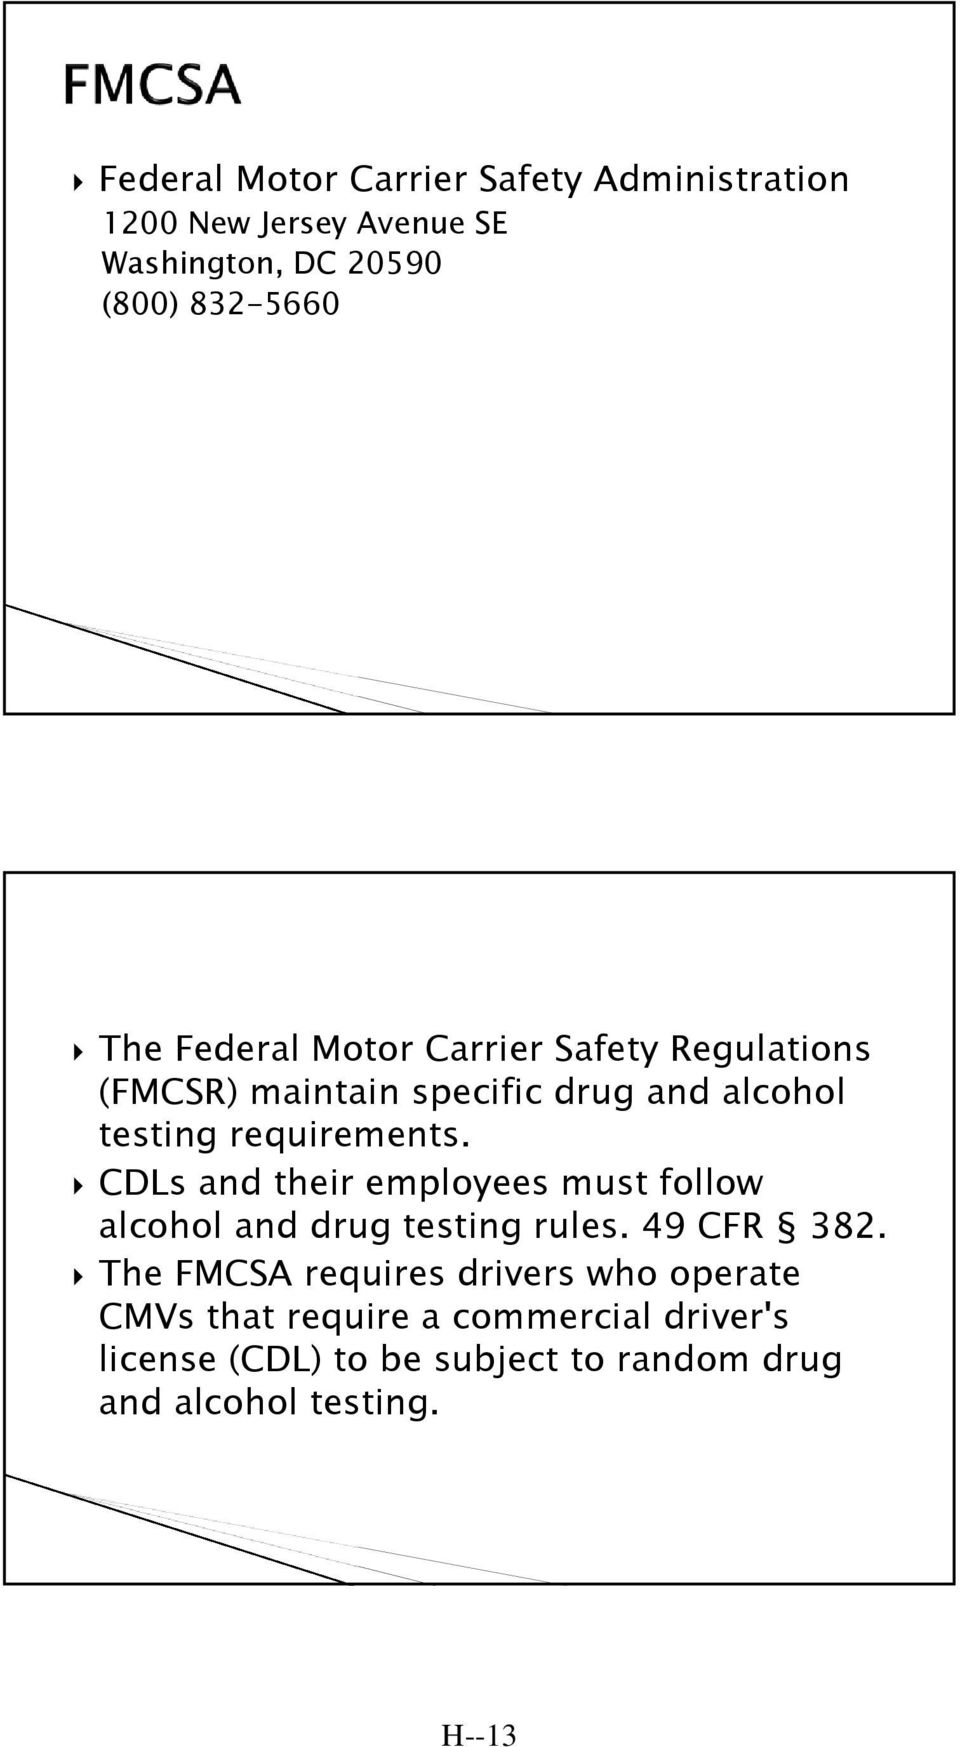 CDLs and their employees must follow alcohol and drug testing rules. 49 CFR 382.